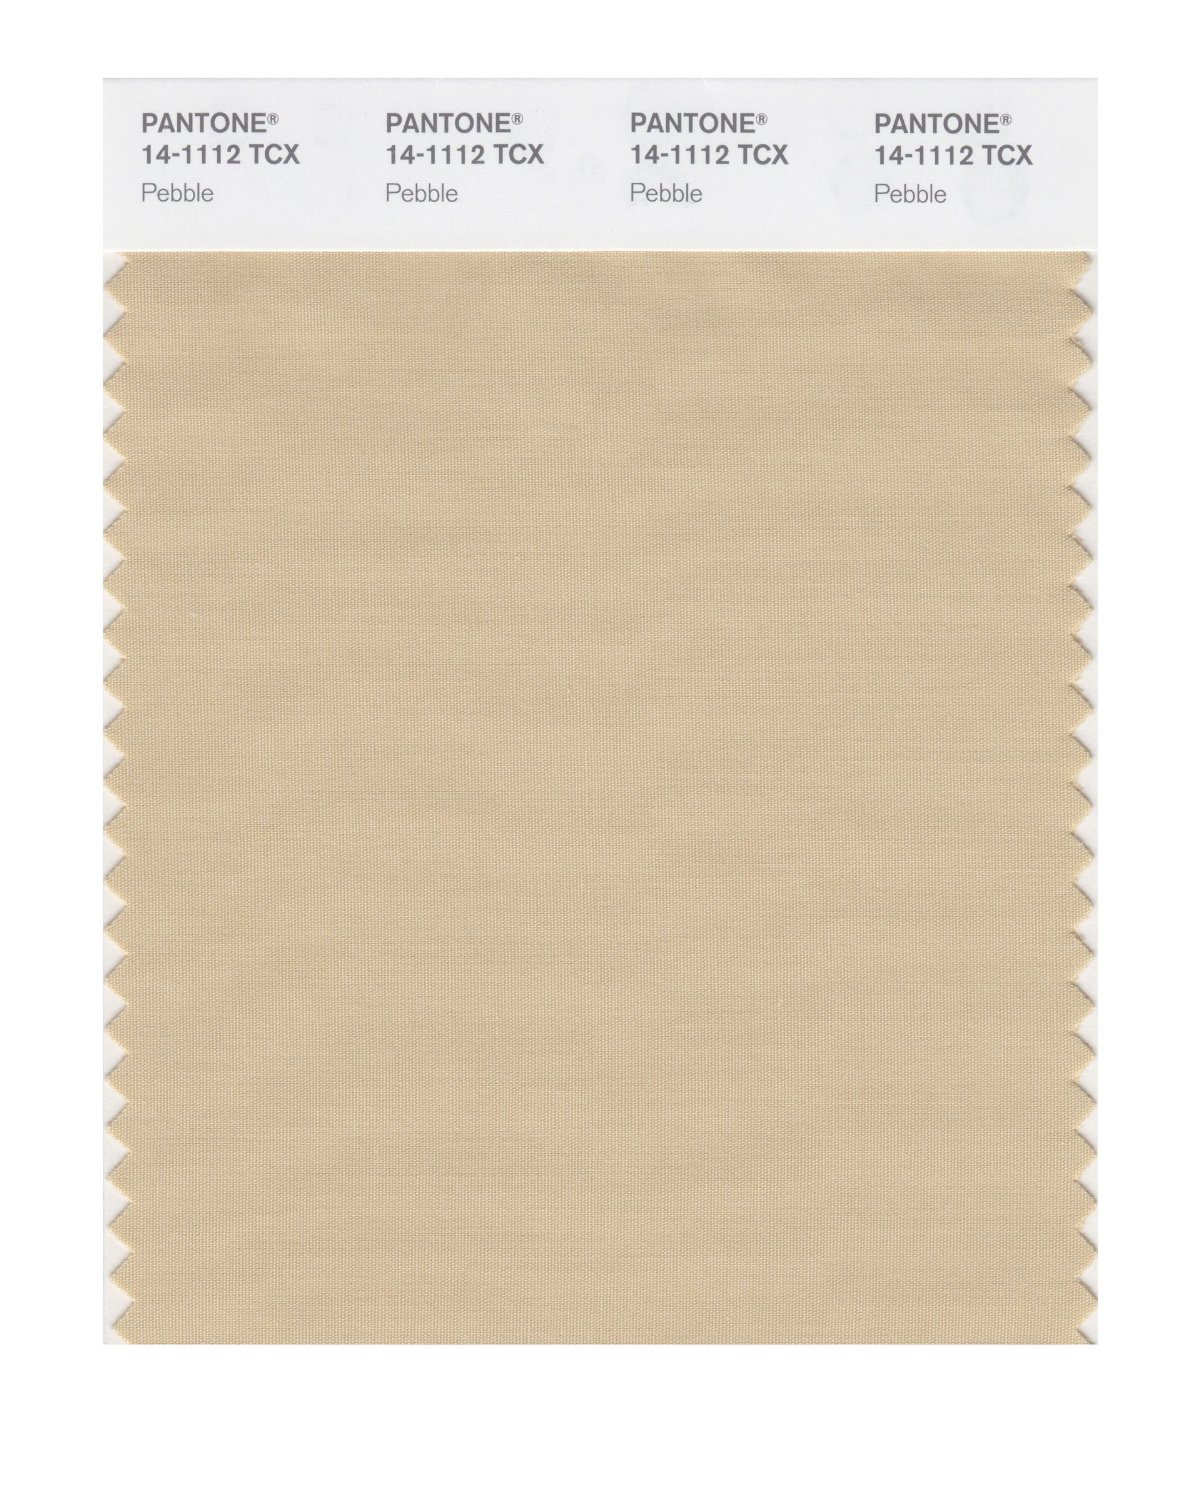 Pantone Smart Swatch 14-1112 Pebble